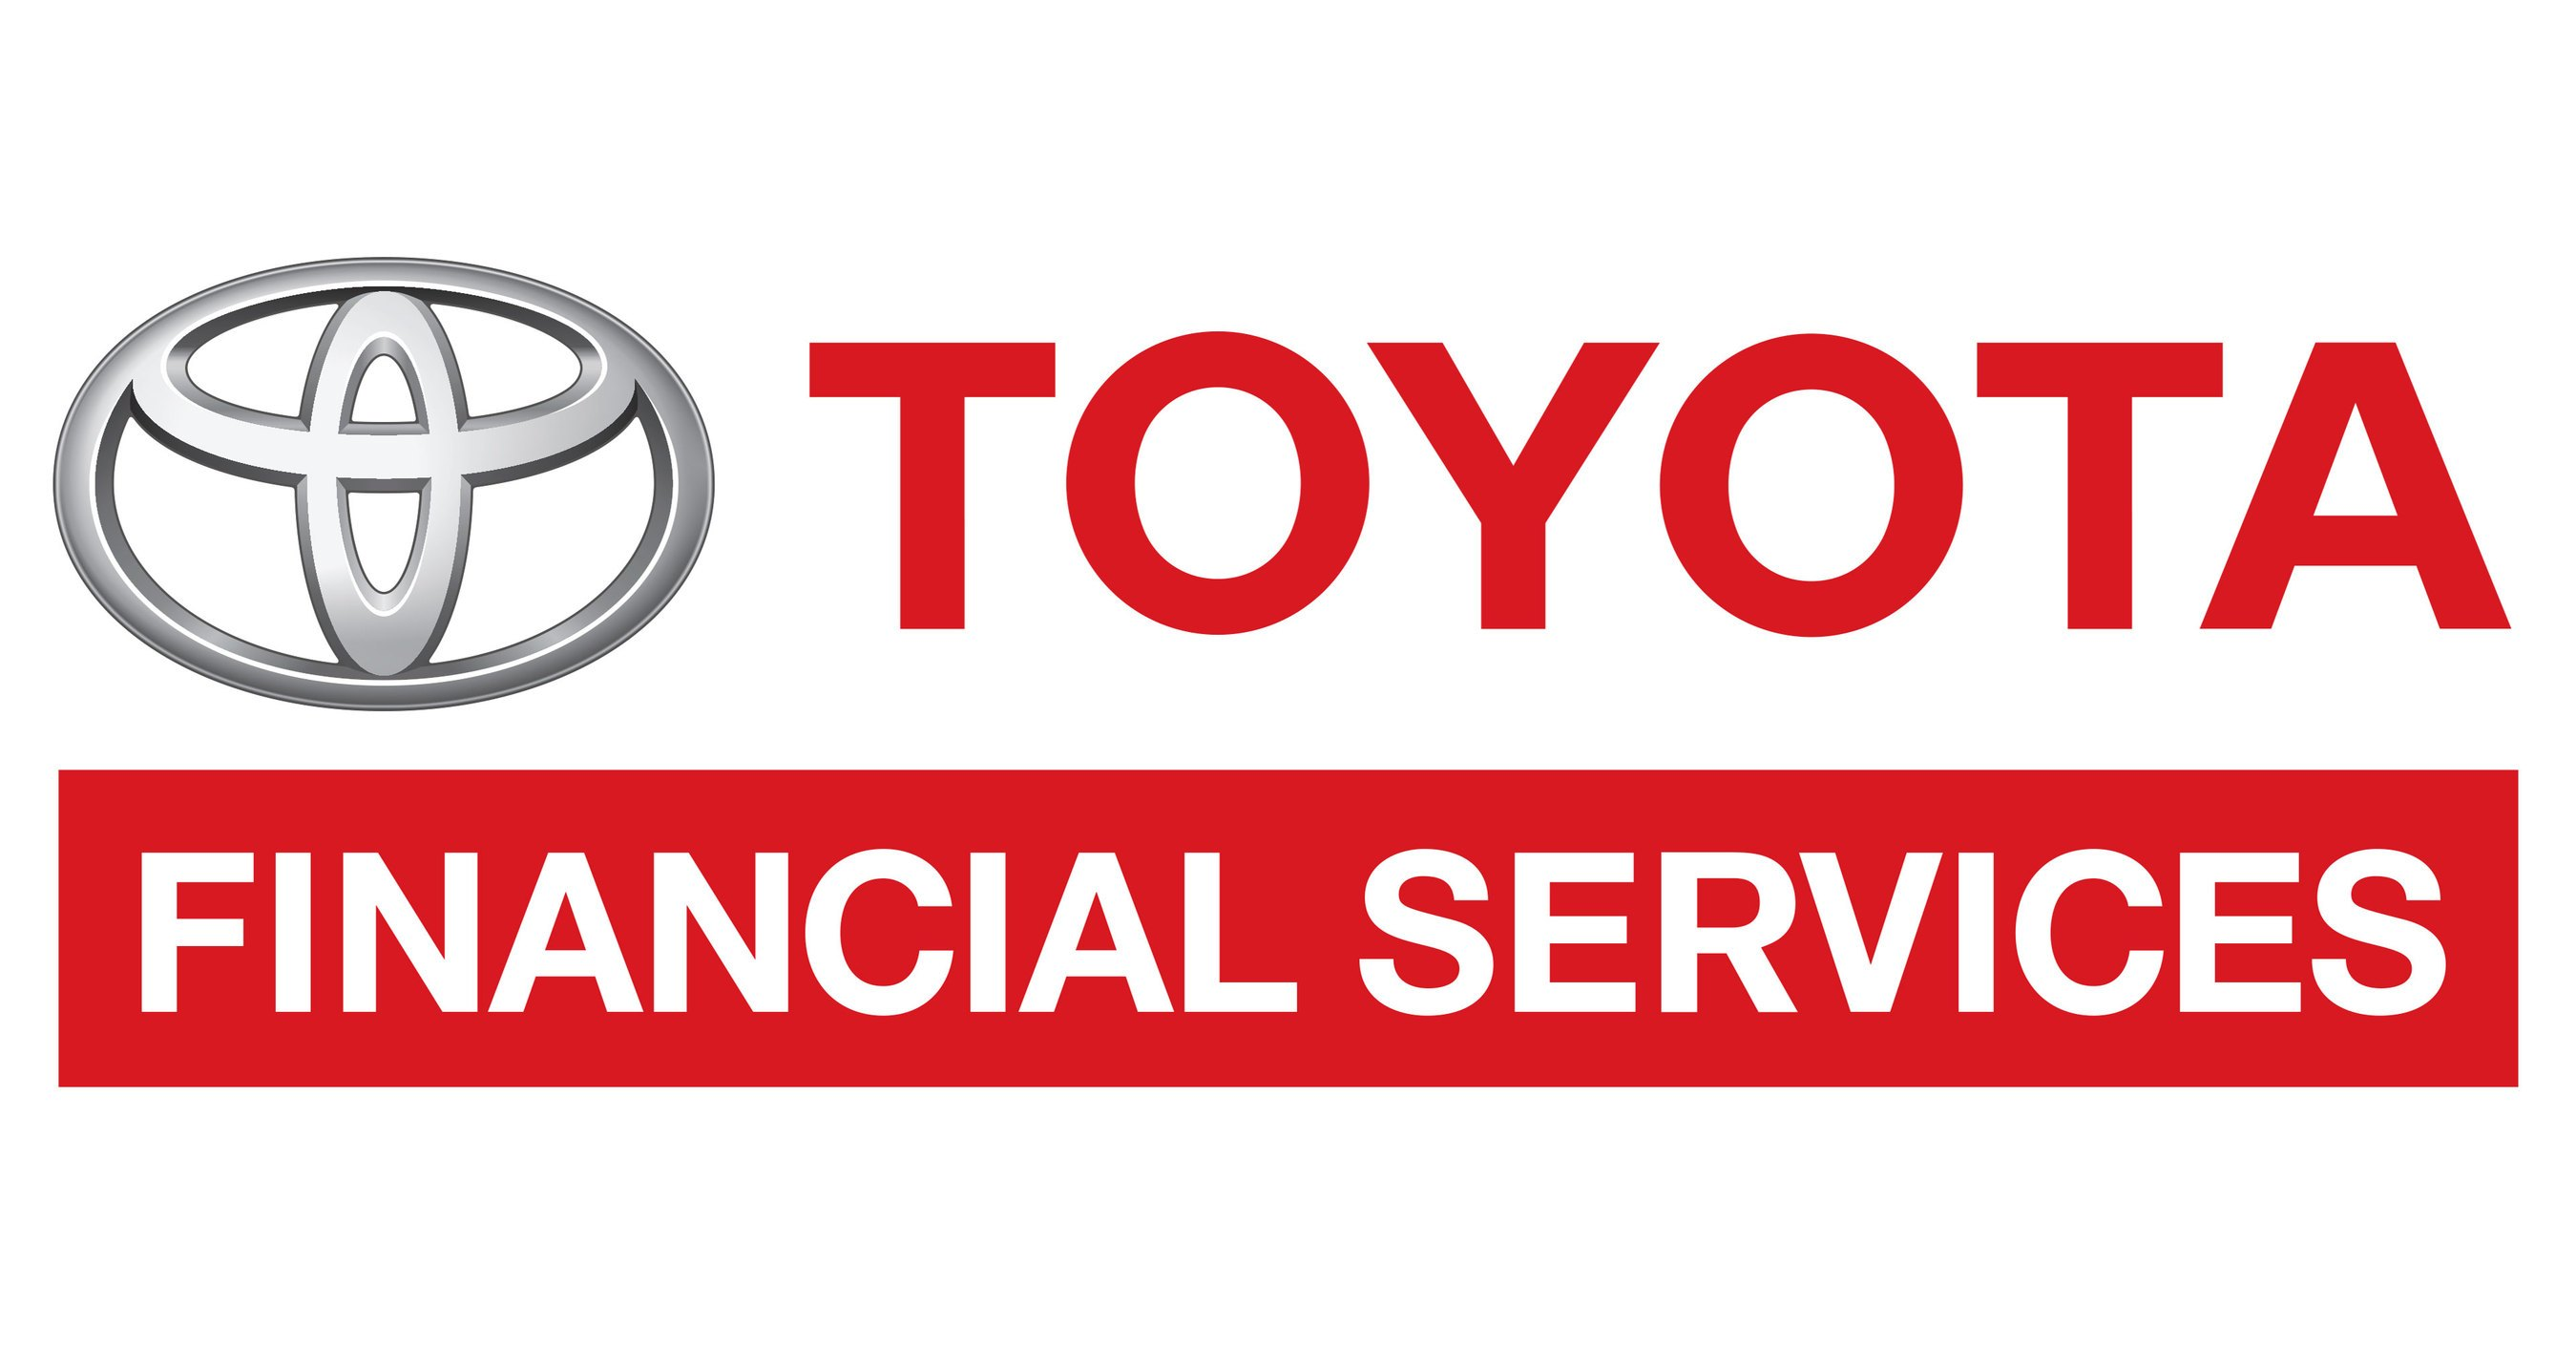 Toyota-Financial-Services.jpg